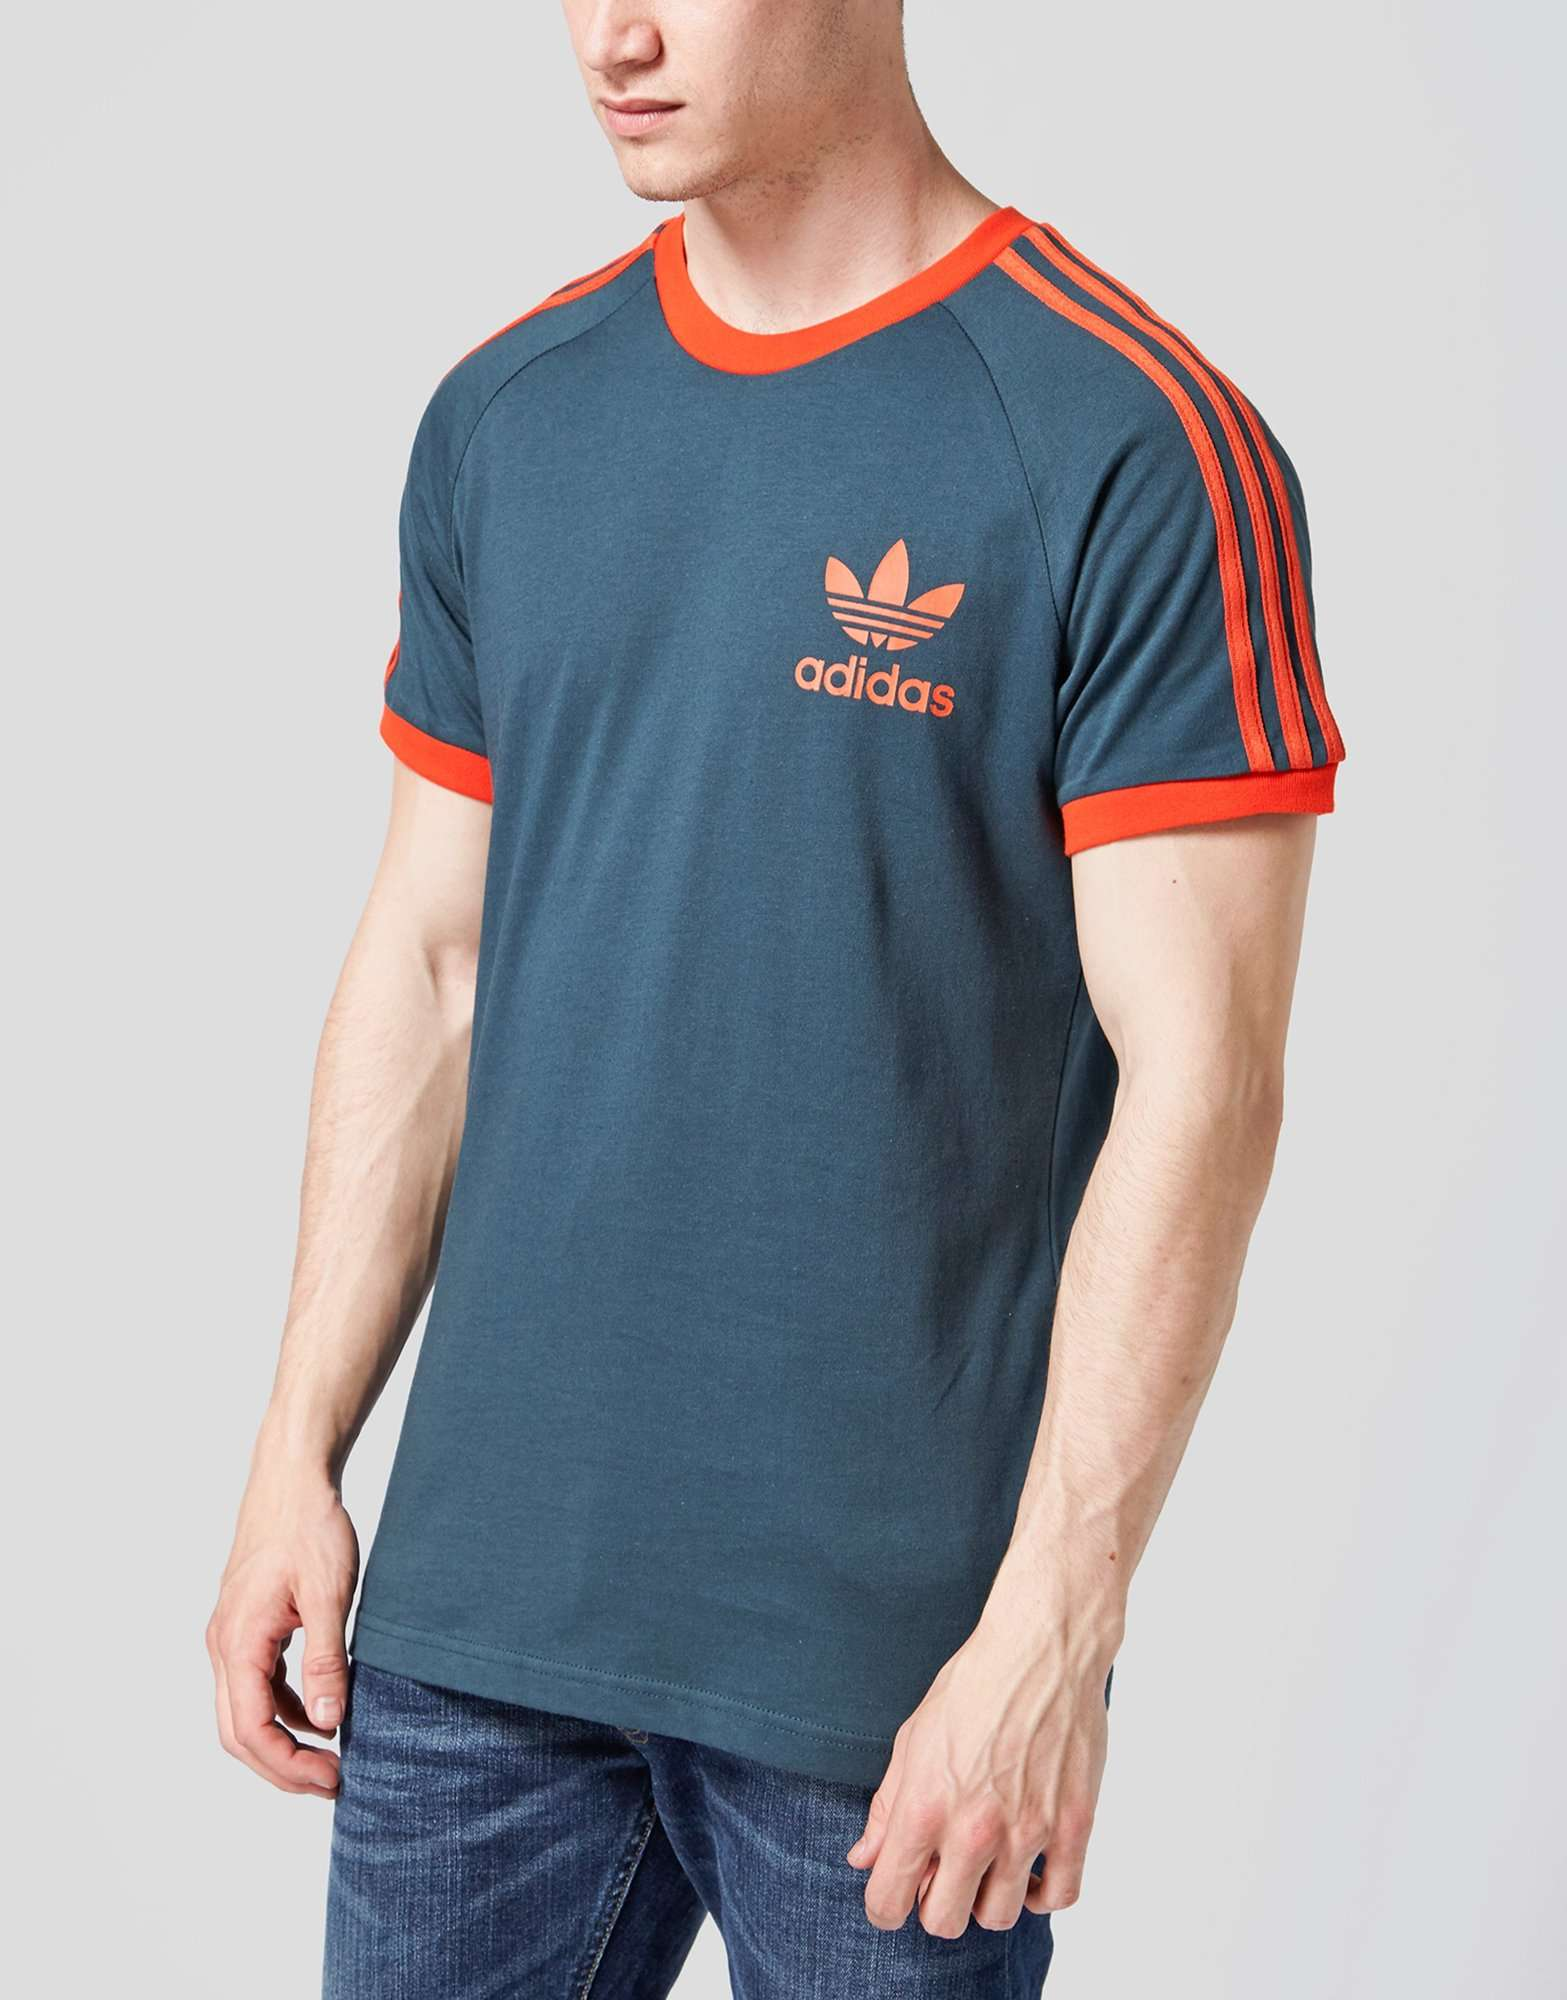 adidas originals california t shirt scotts menswear. Black Bedroom Furniture Sets. Home Design Ideas